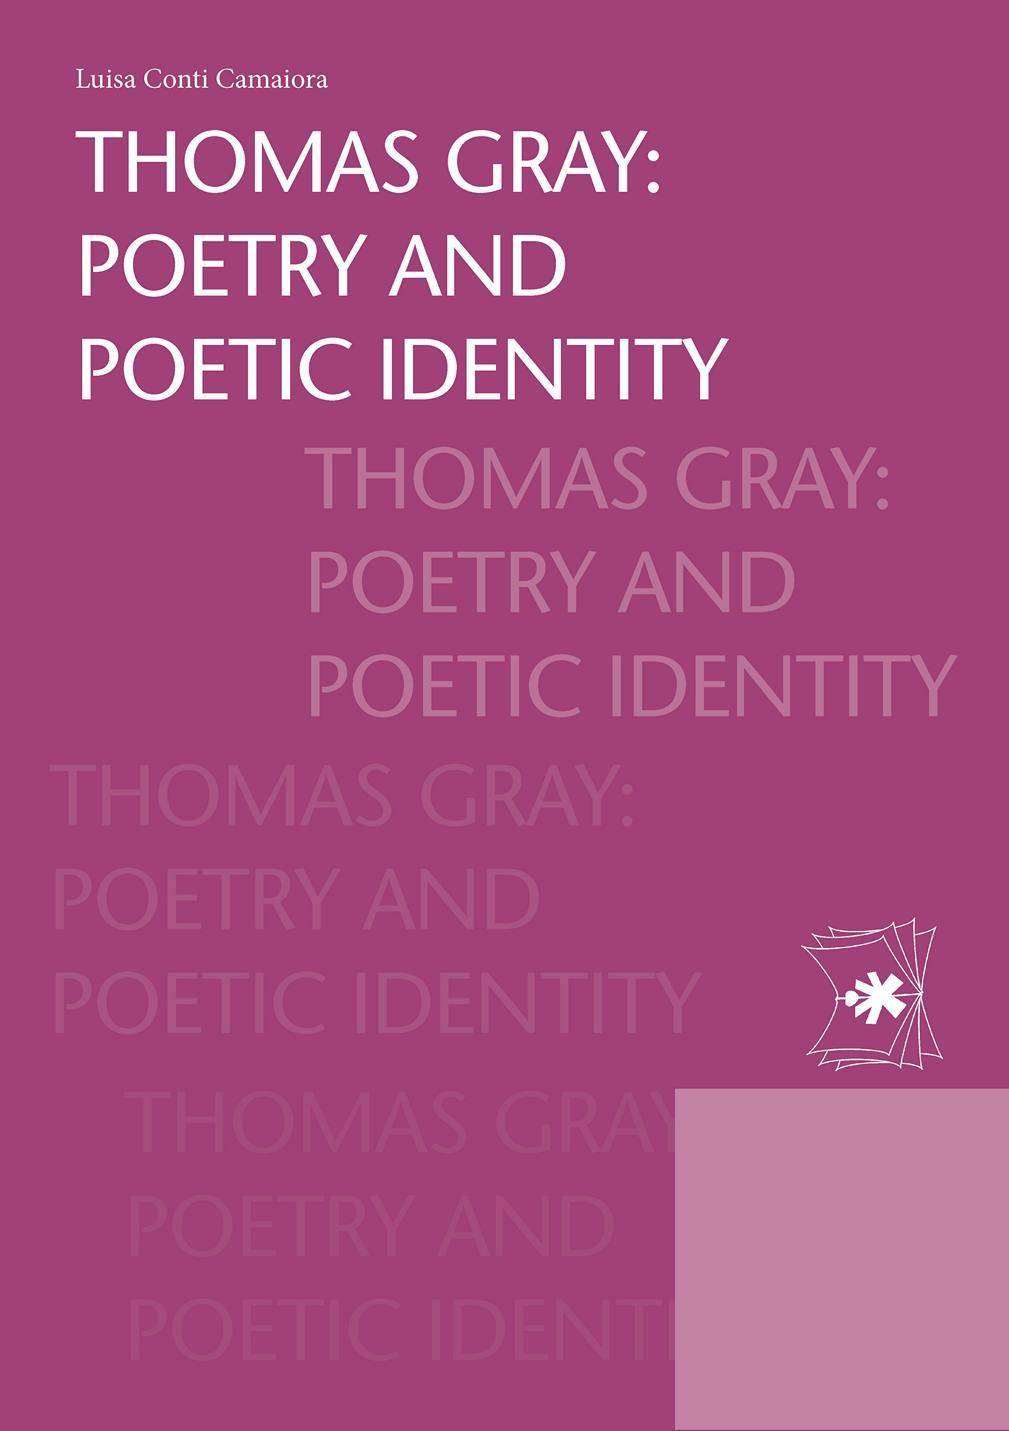 THOMAS GRAY POETRY AND POETIC IDENTITY